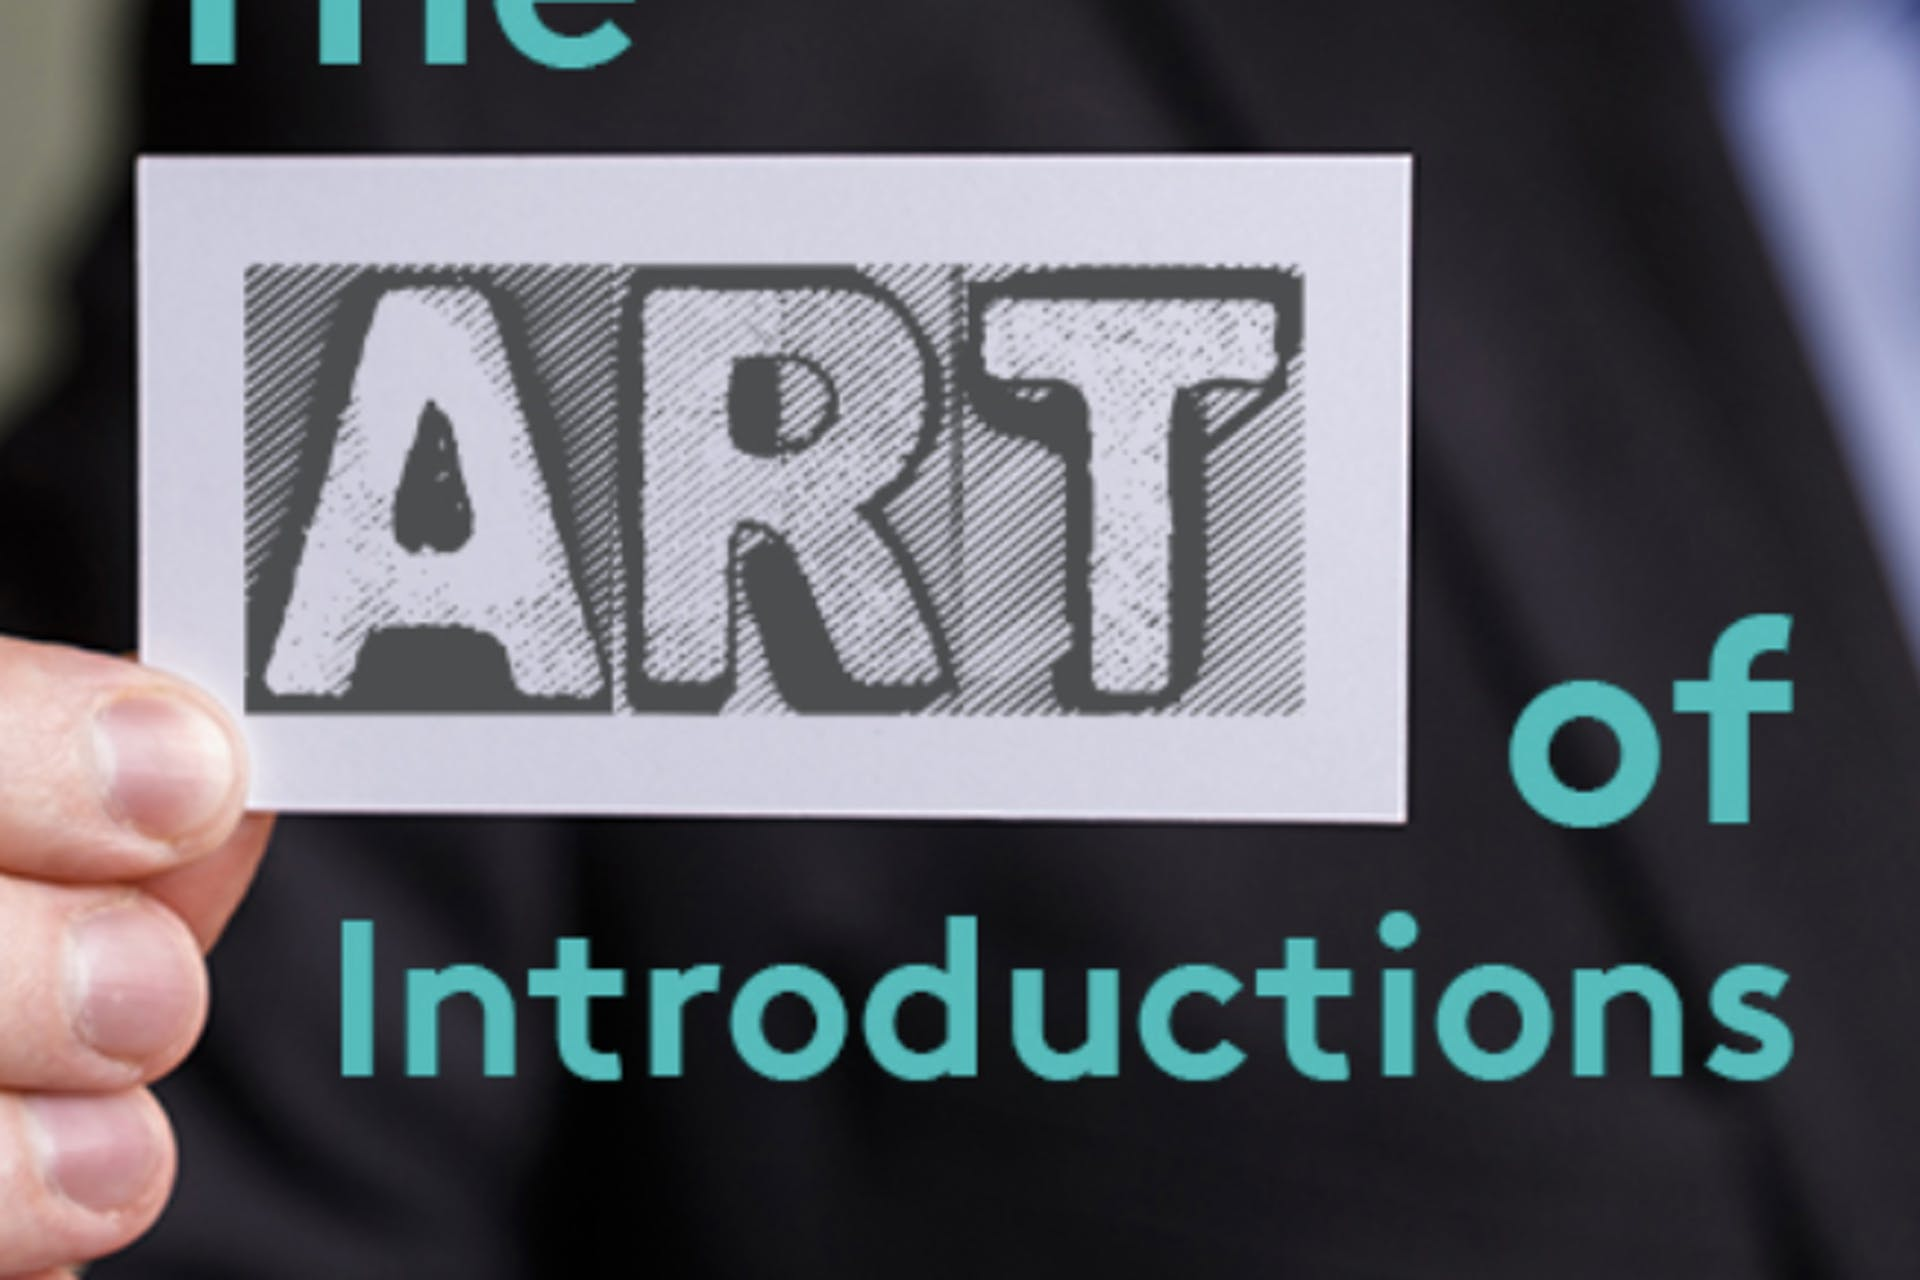 A man holding up the word ART, with a full graphic that reads: The Art of Introductions